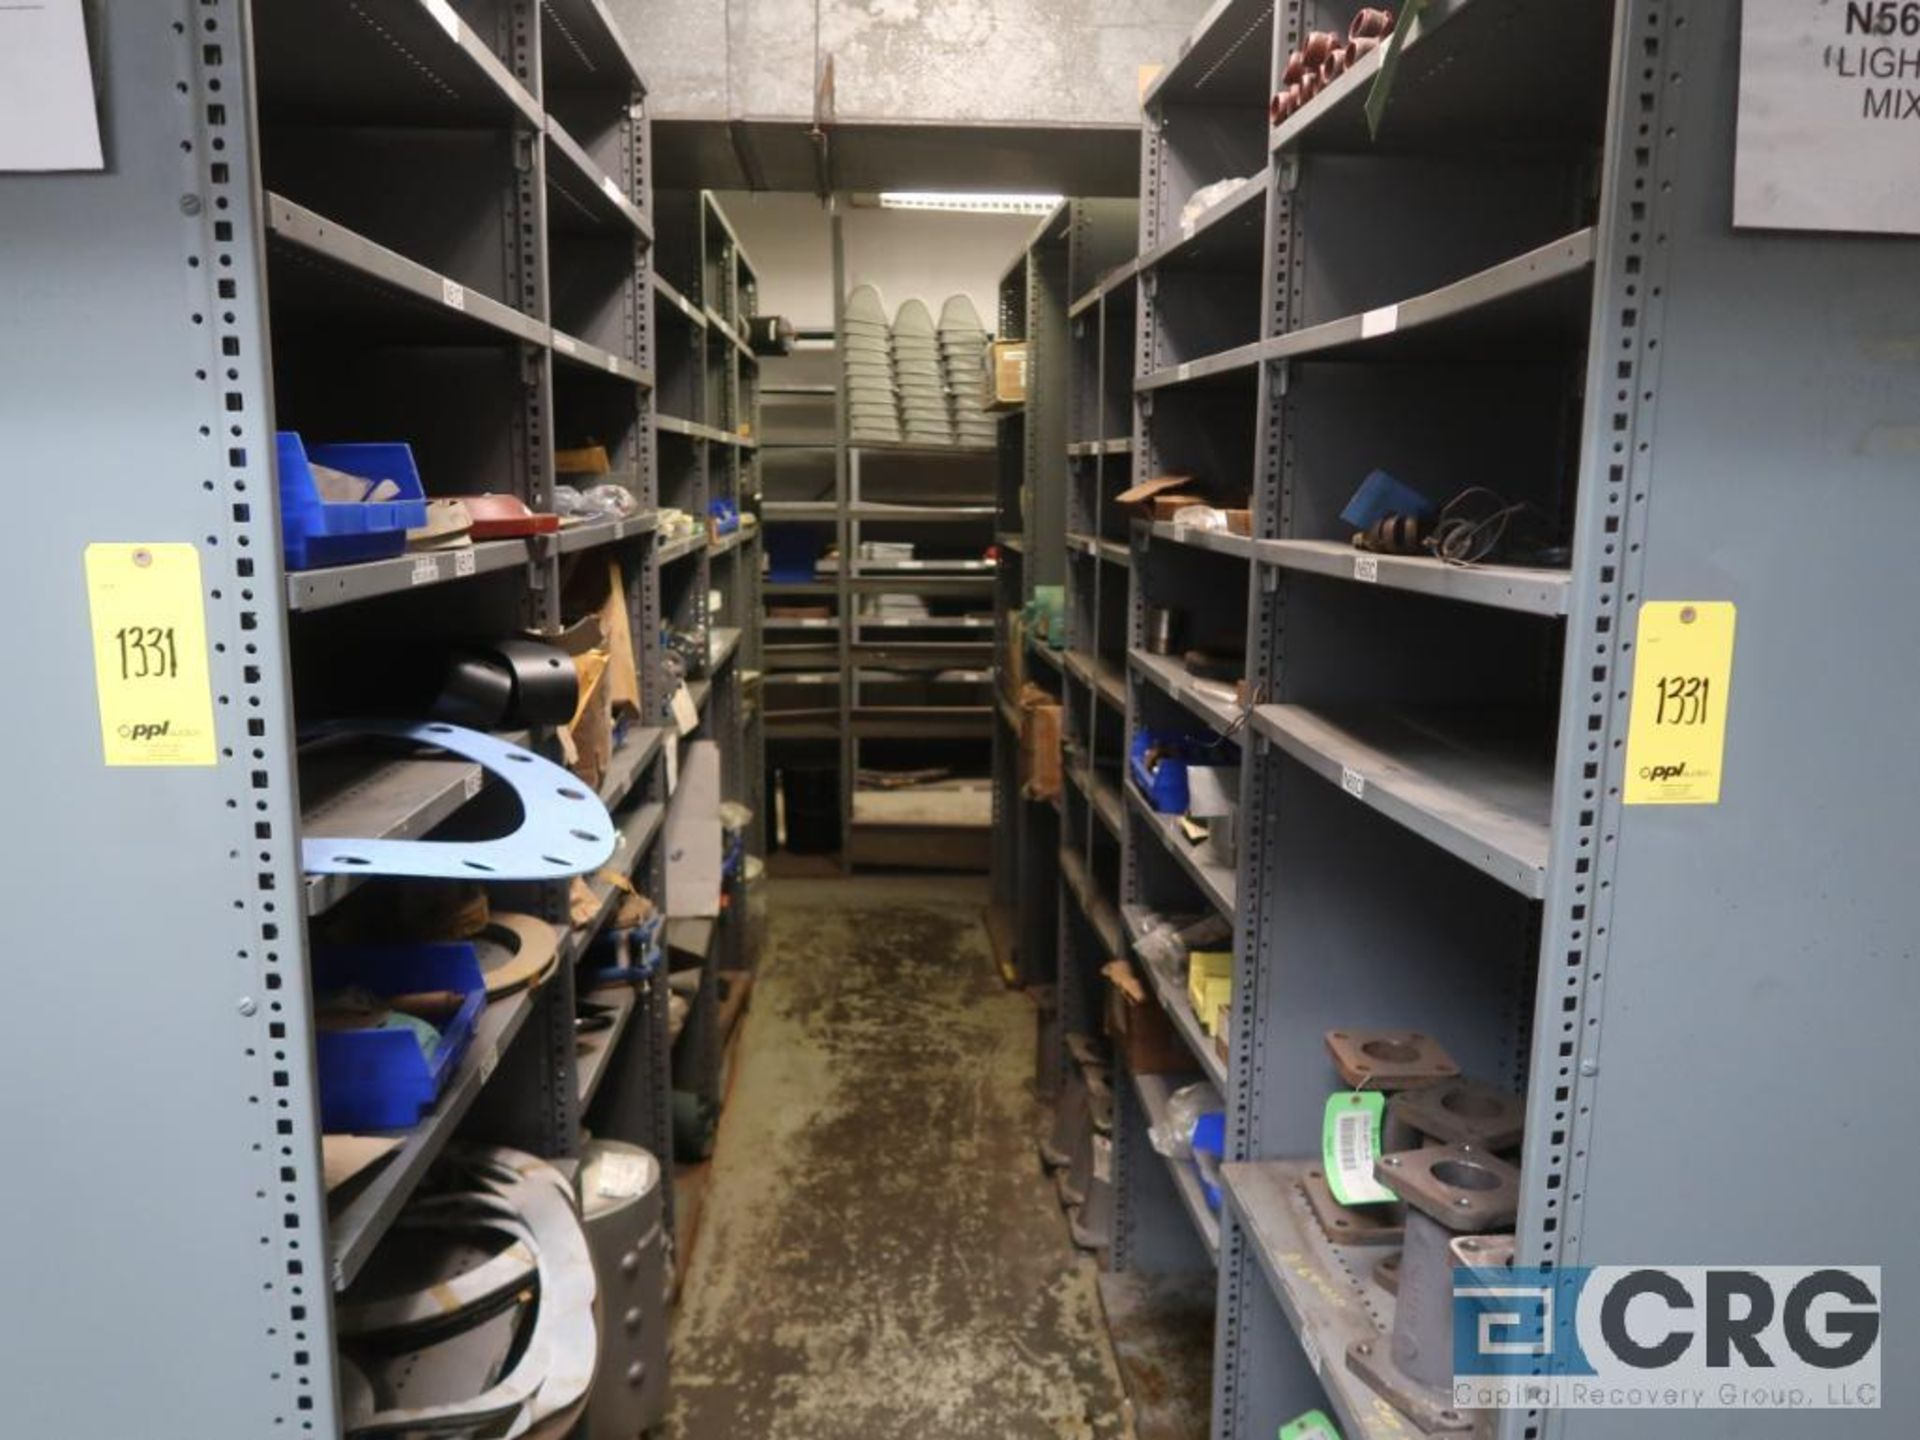 Lot of (35) sections with assorted parts including gaskets, fittings, shaft pins, gears, and - Image 7 of 17